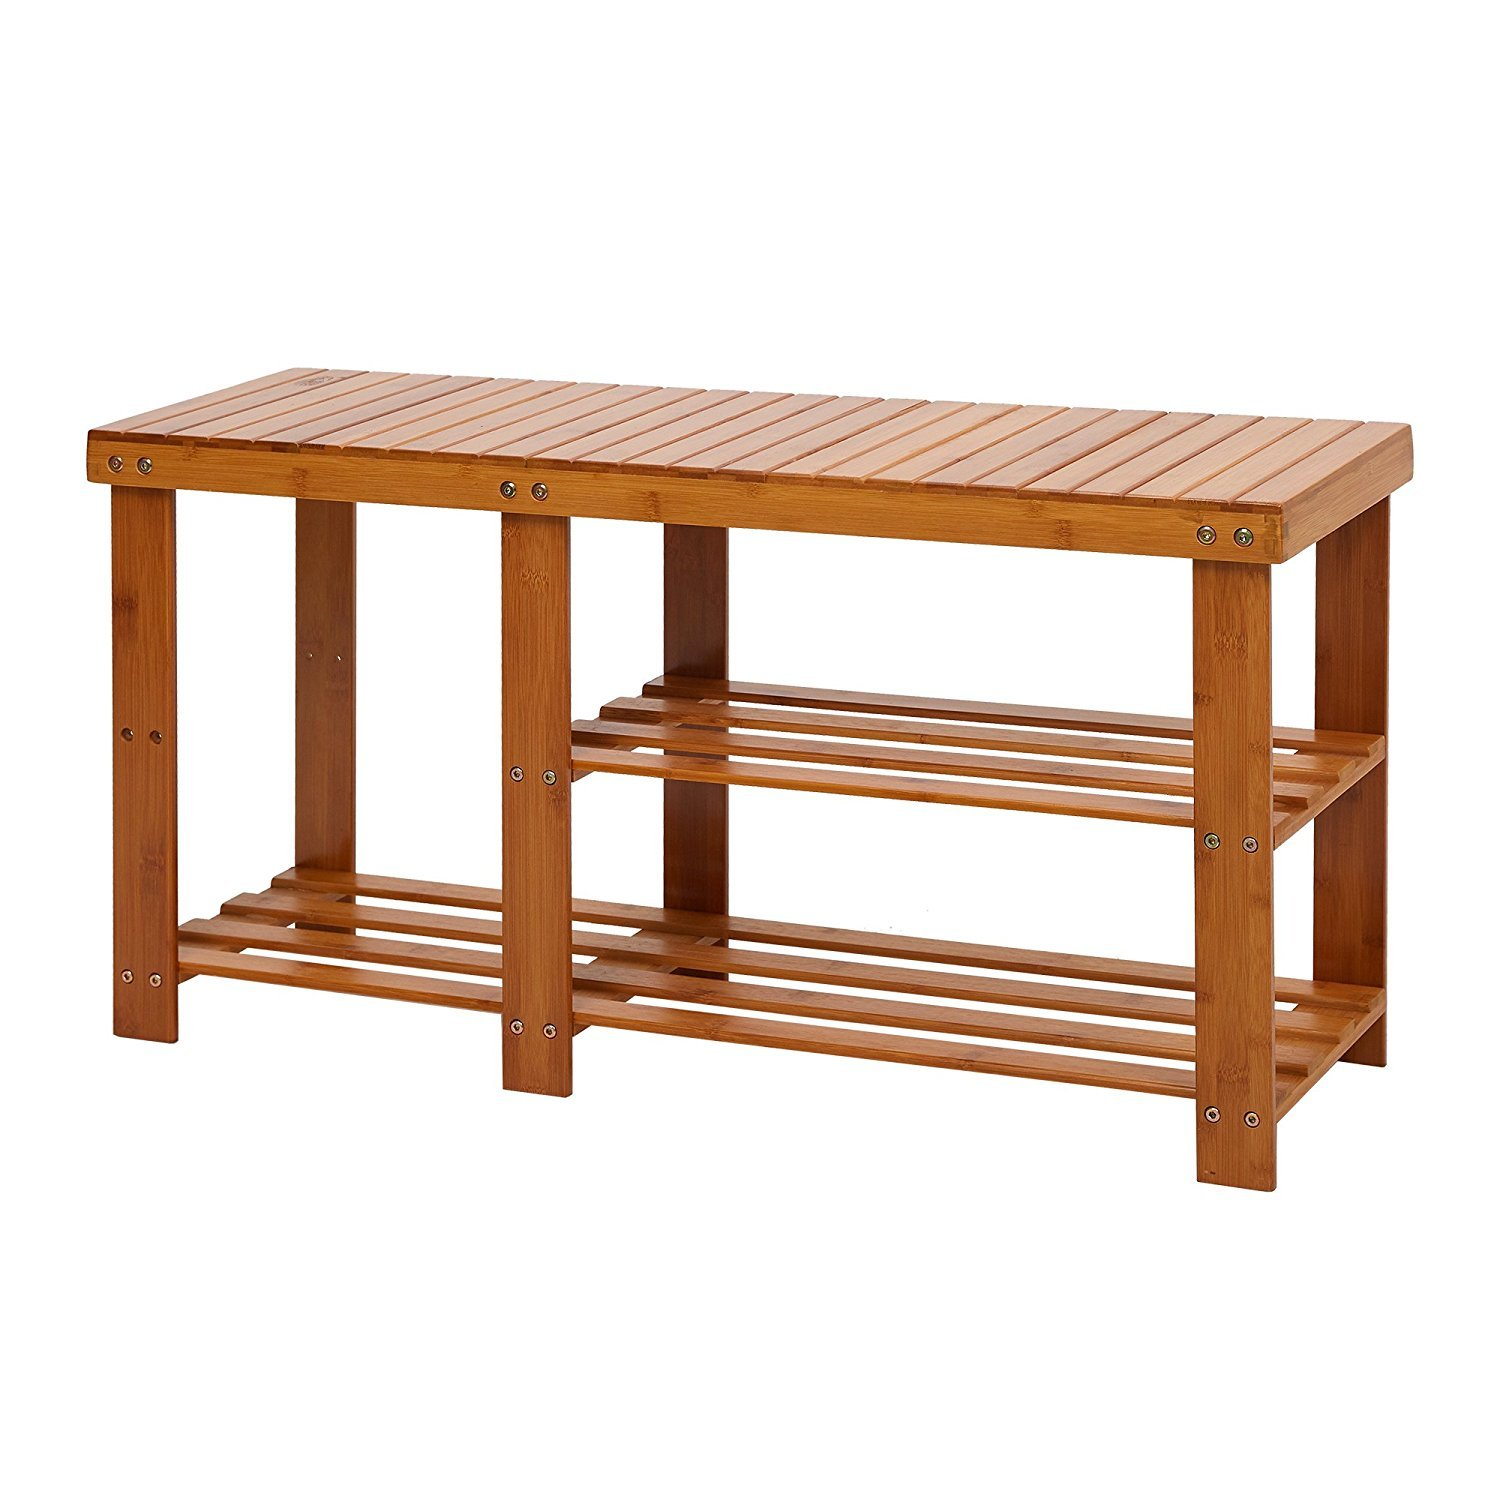 Livebest Bamboo Shoe Rack Bench 2 Tier Free Standing Boot Organizing Rack Entryway Storage Shelf Hallway 100% Natural Material Furniture for Home,Office,School (34.5'' L)